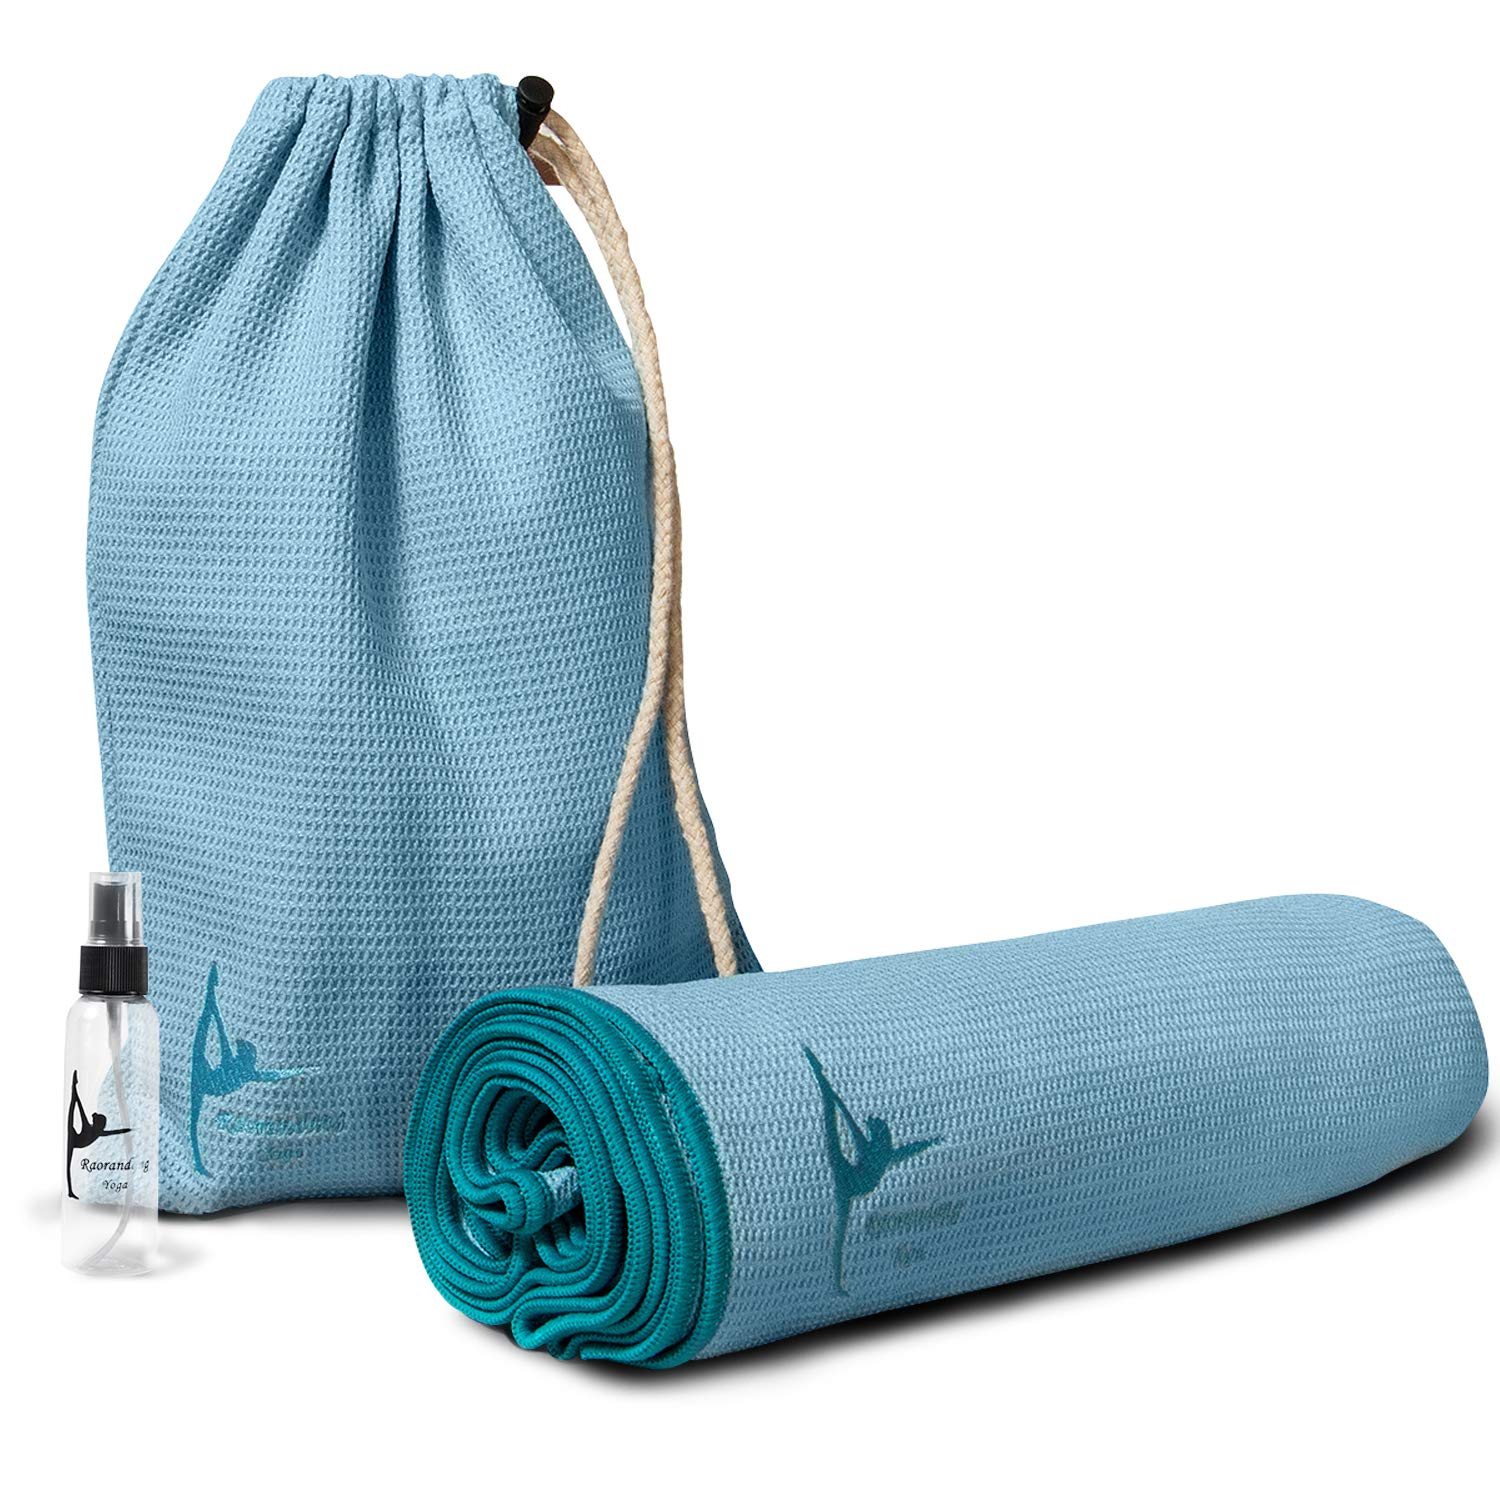 RaoRanDang Hot Yoga Towel,Yoga Mat Towel, for Women Non-Slip Silicone Bottom with Special Corner Pockets Carry Bag and Spray Bottle for Non Slip ...